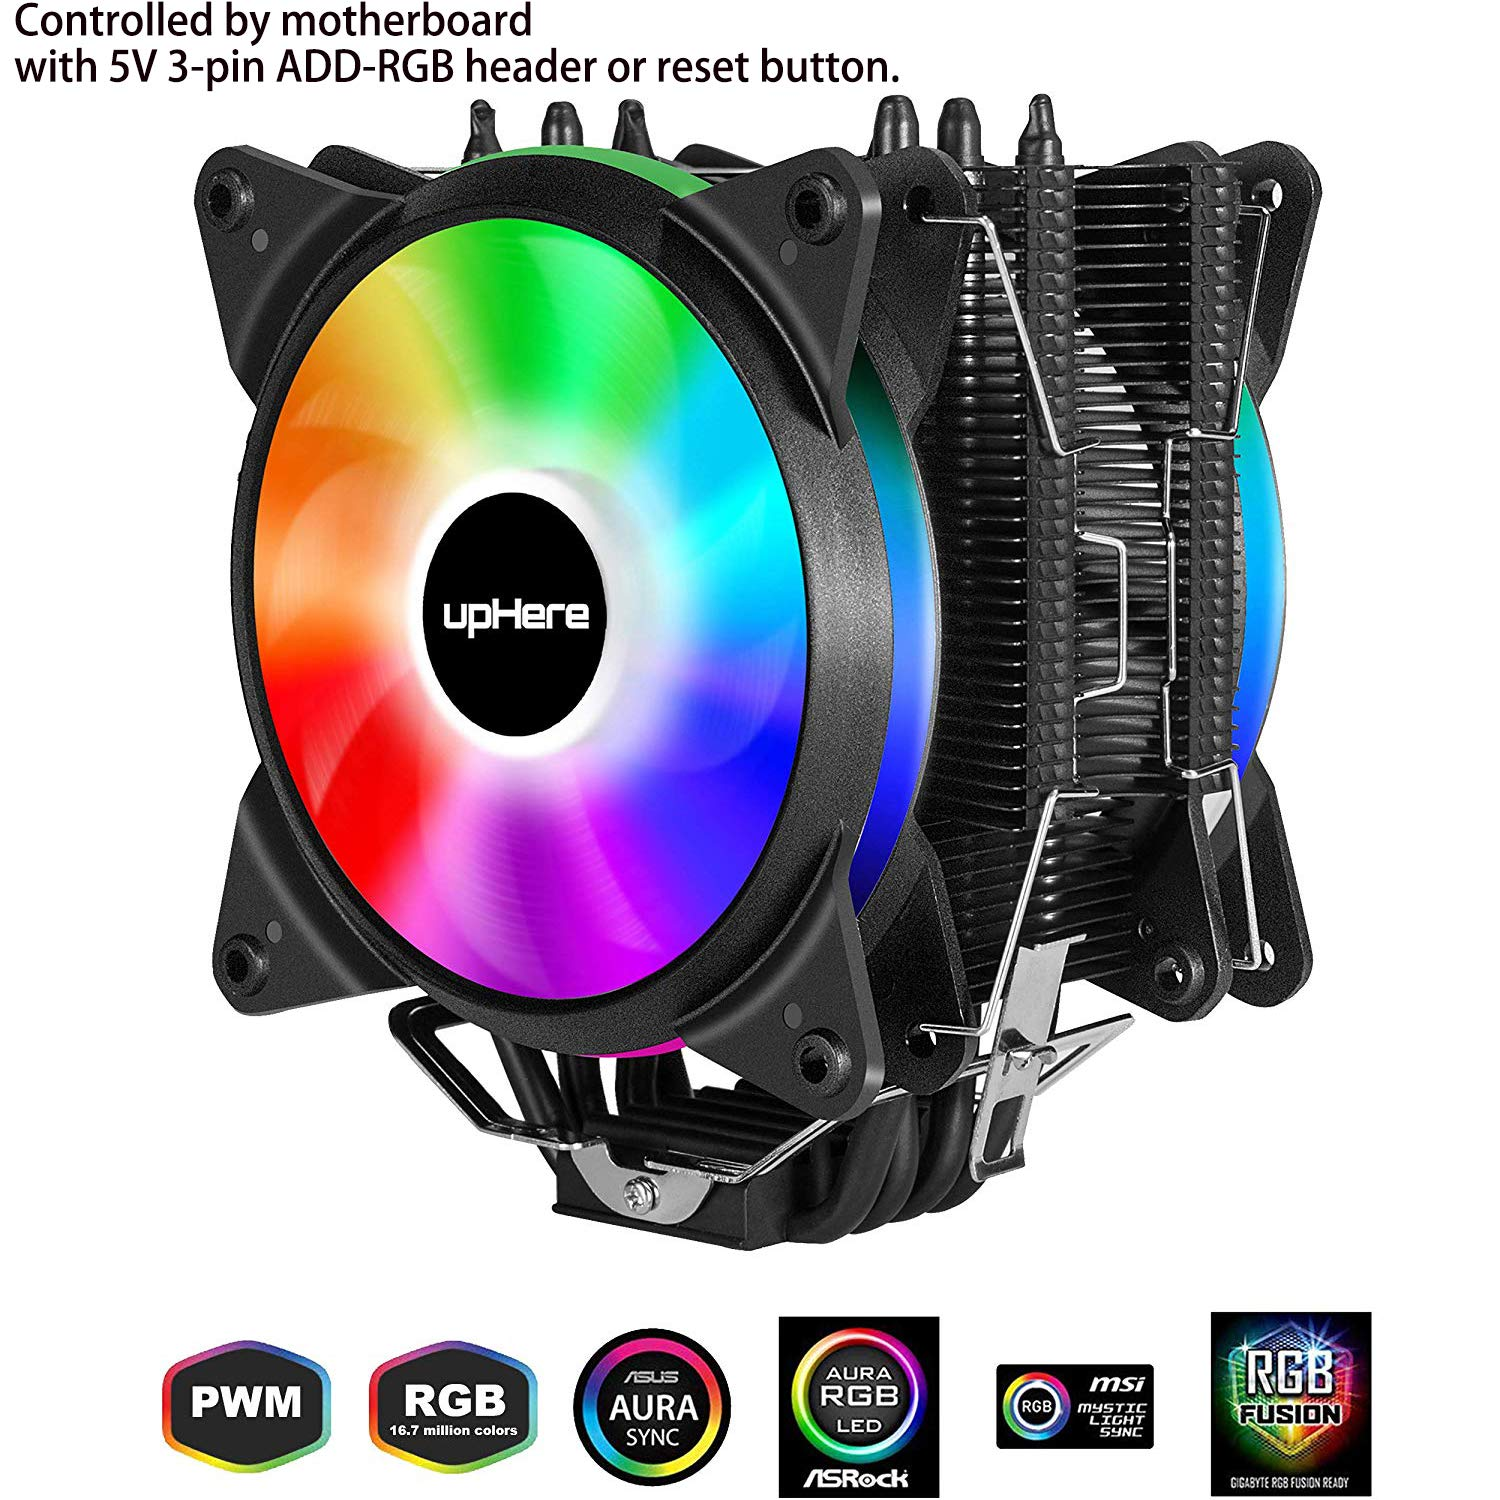 upHere 5V RGB CPU Cooler with 4 Direct Contact Heatpipes,Dual 120mm PWM Intelligent Control 5V Addressable RGB Fan Motherboard Sync,AC12RGB